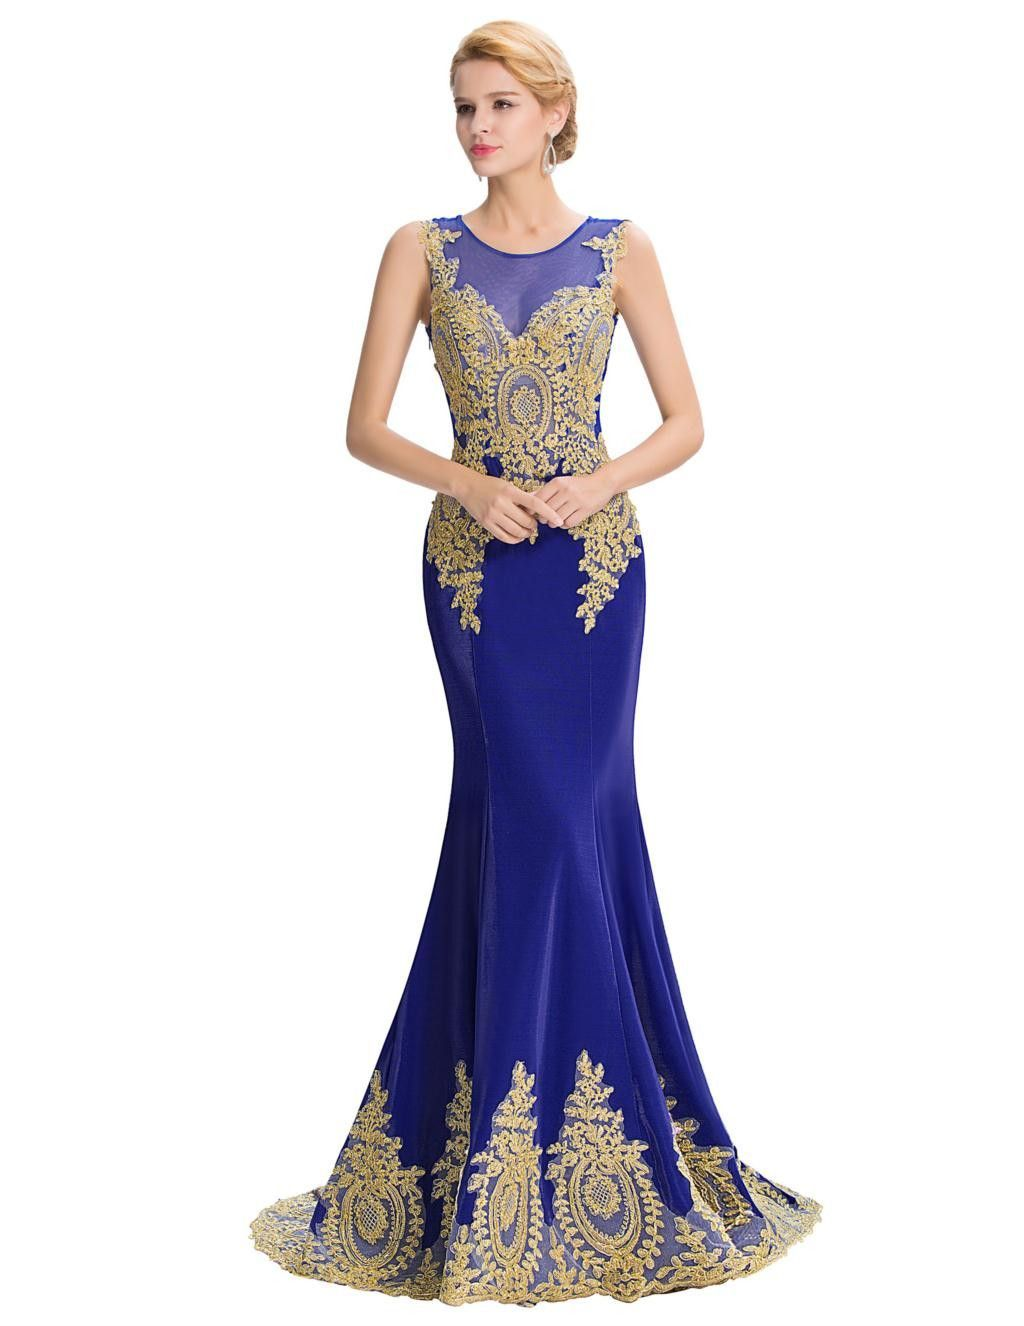 Occasion Formal Evening Item Type Evening Dresses Actual Images